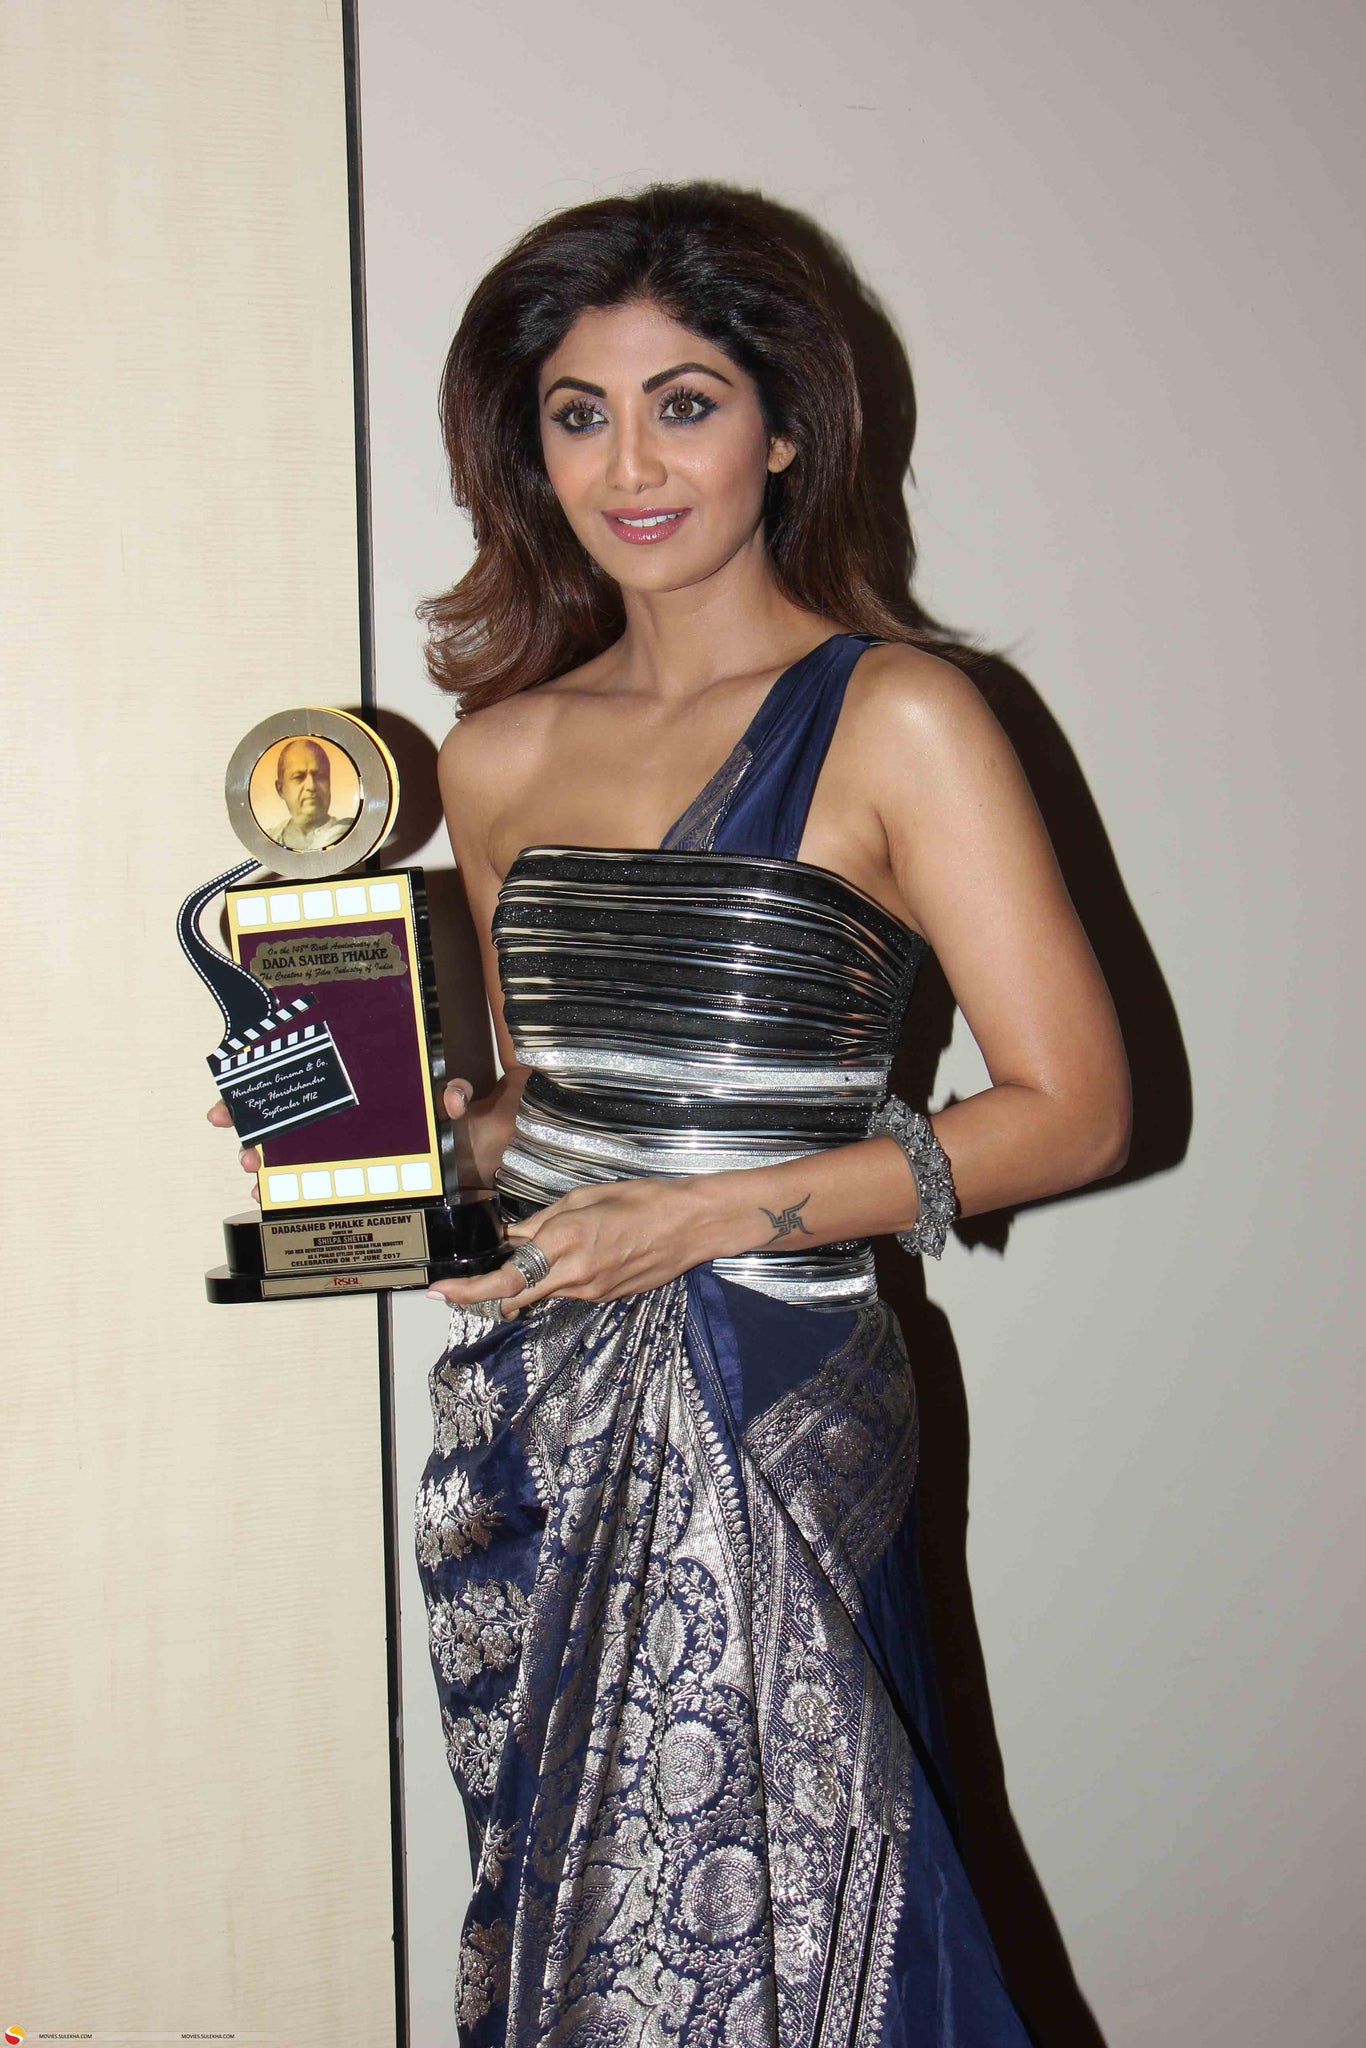 Shilpa Shetty Looked Classy In A Saree Gown By Amit Aggarwal At The Dada Saheb Phalke Awards